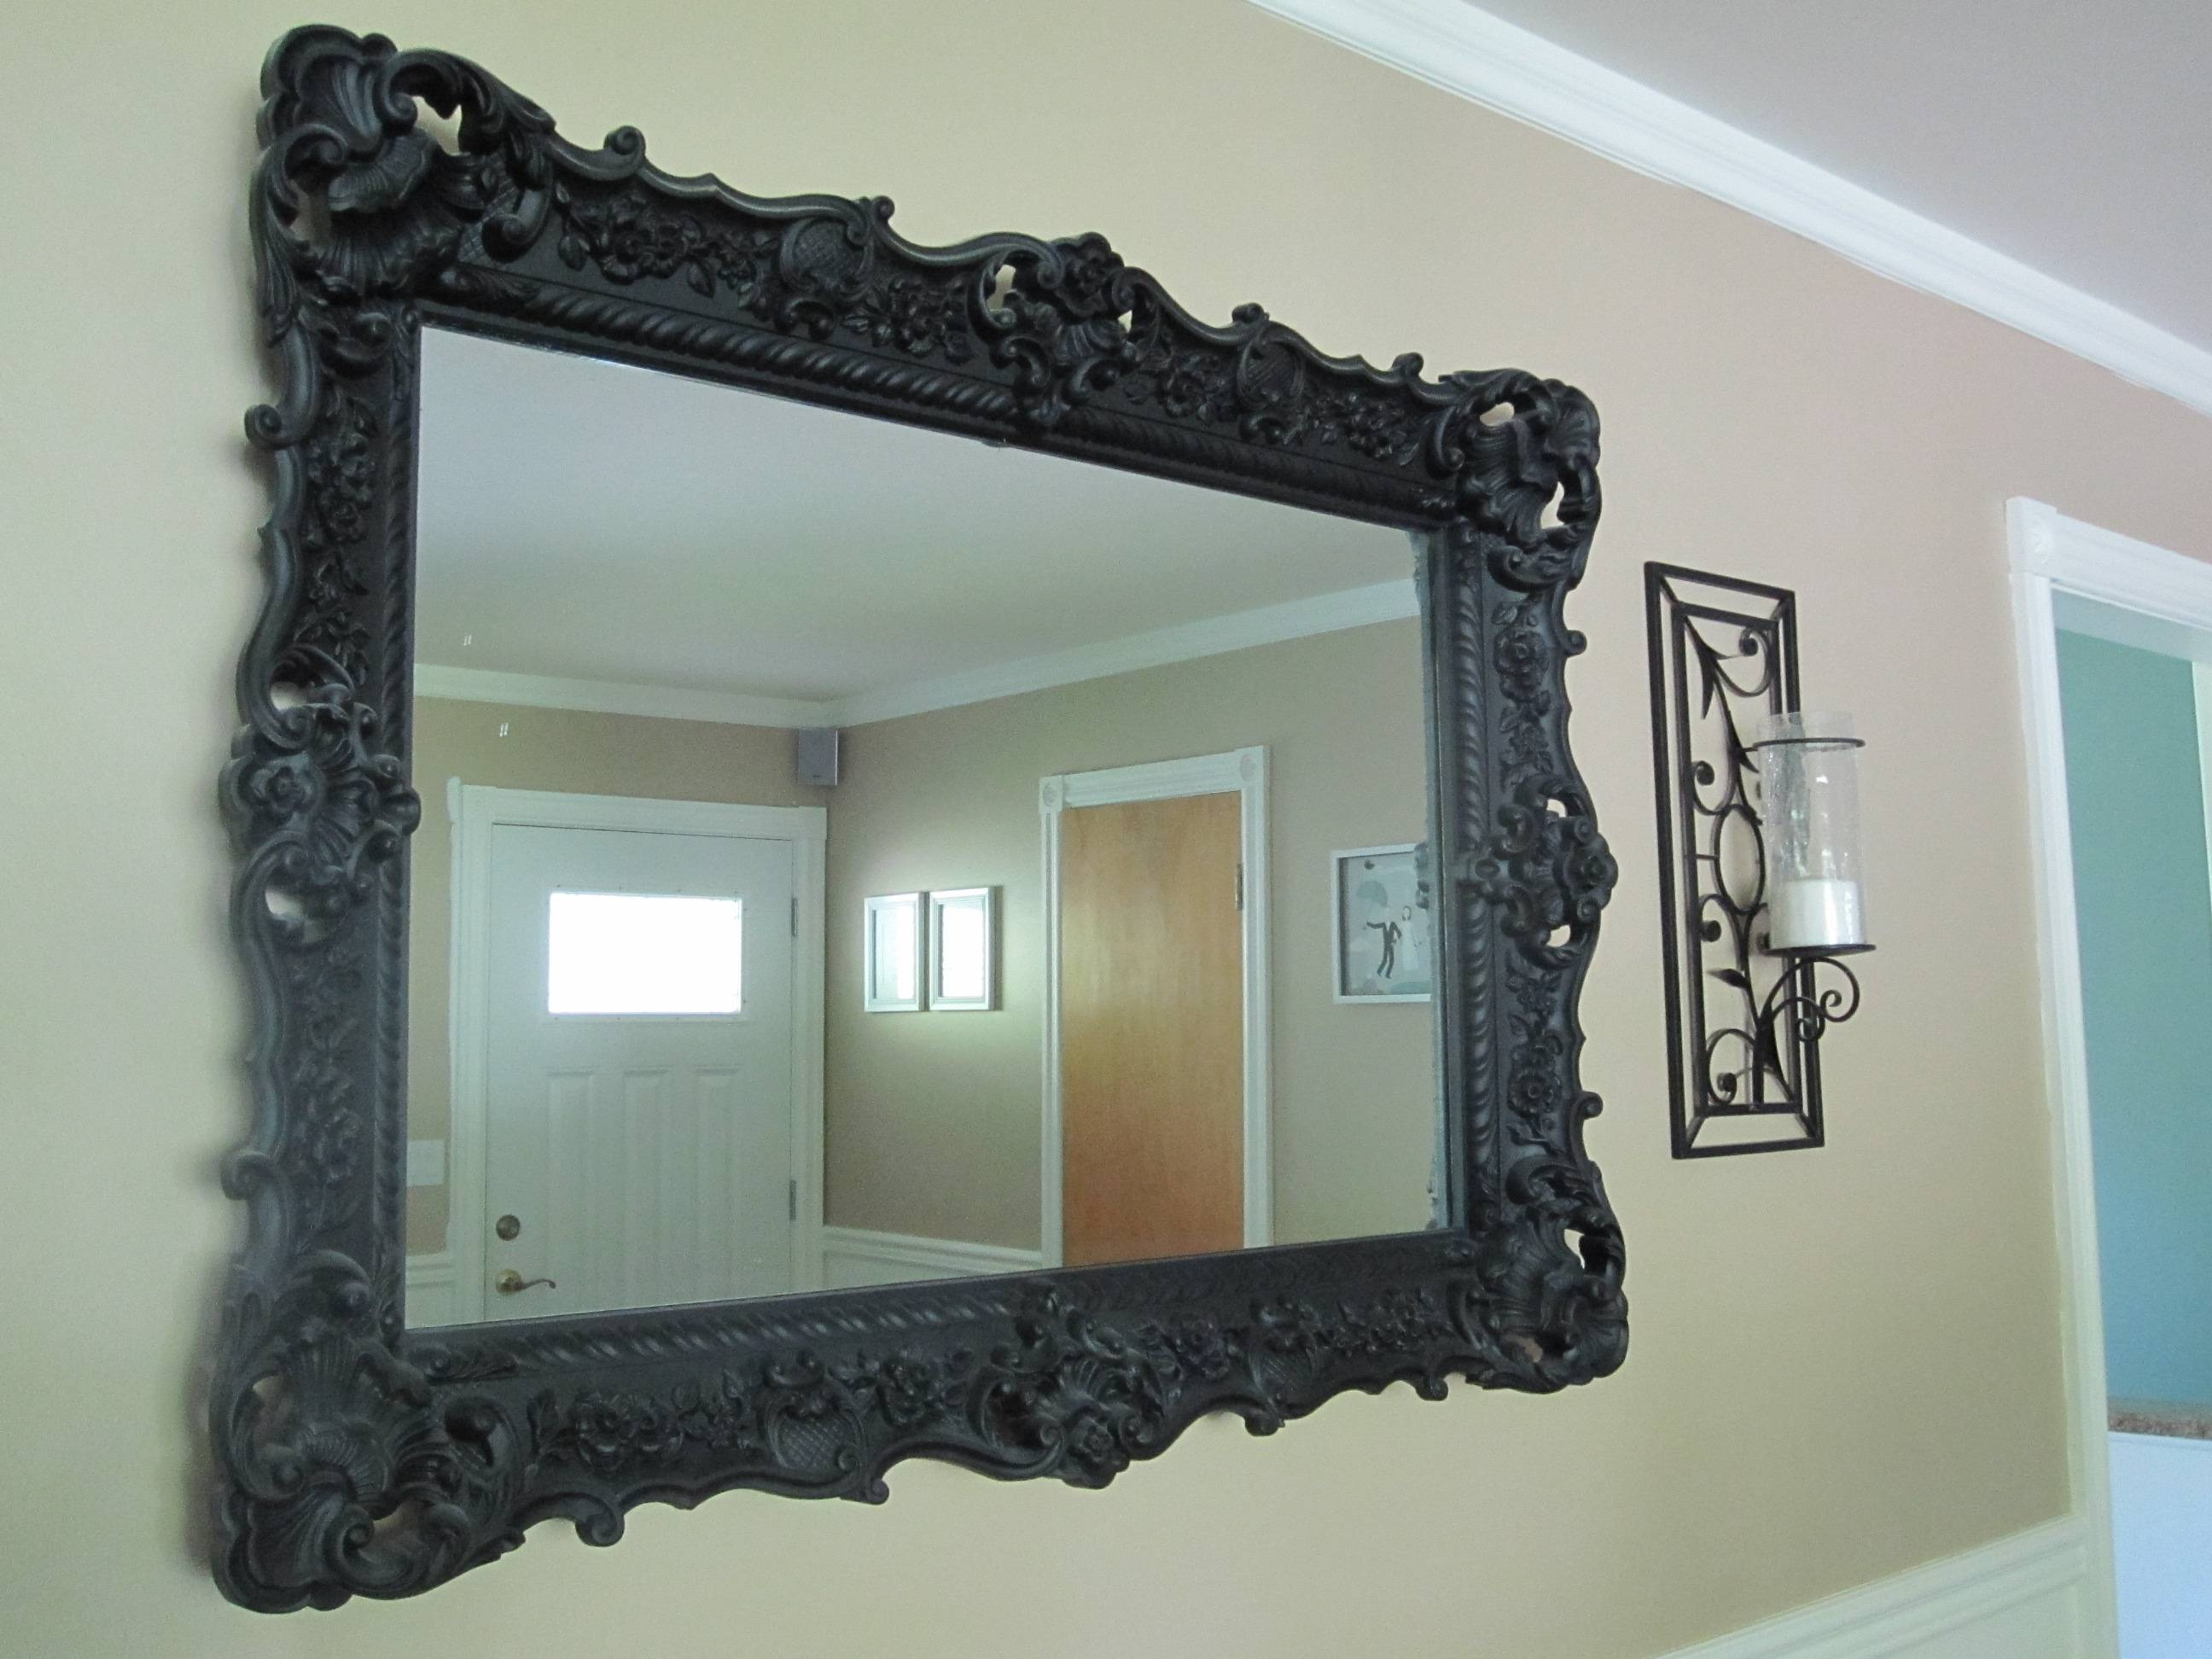 Accessories – Page 4 pertaining to Large Black Mirrors (Image 3 of 15)